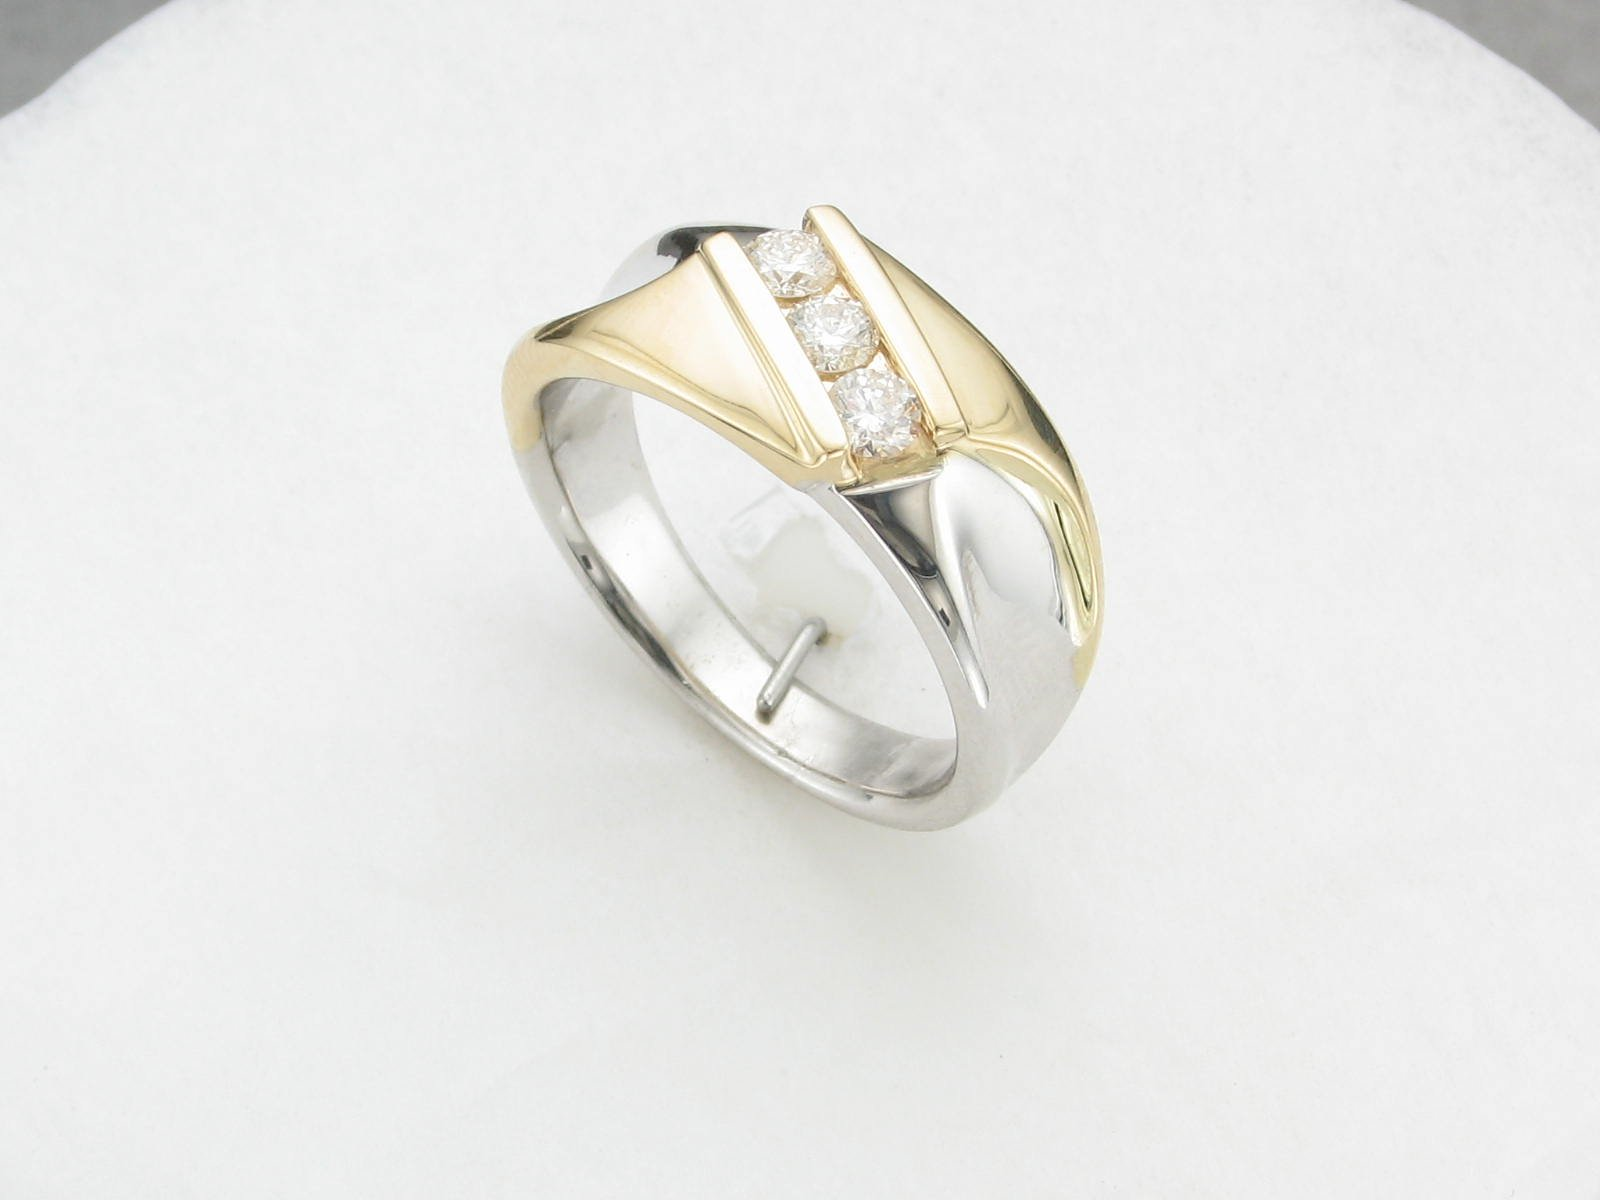 0.45tcw Two Tone Diamond Ring Set in 14 Karat Yellow & White Gold